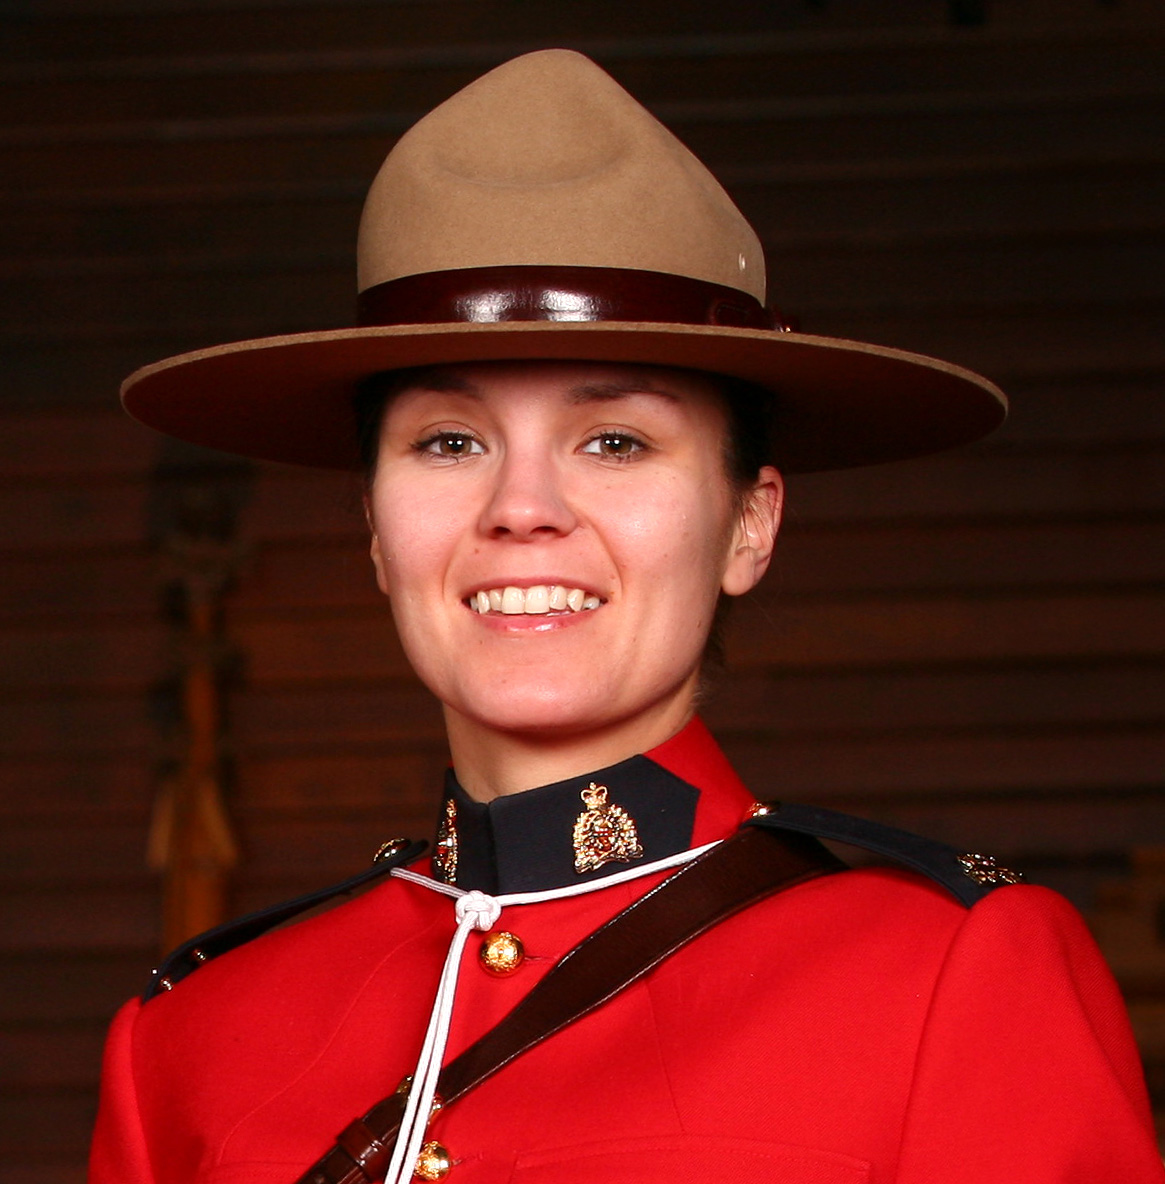 Constable Chelsey Alice Robinson– © Her Majesty the Queen in Right of Canada as represented by the Royal Canadian Mounted Police